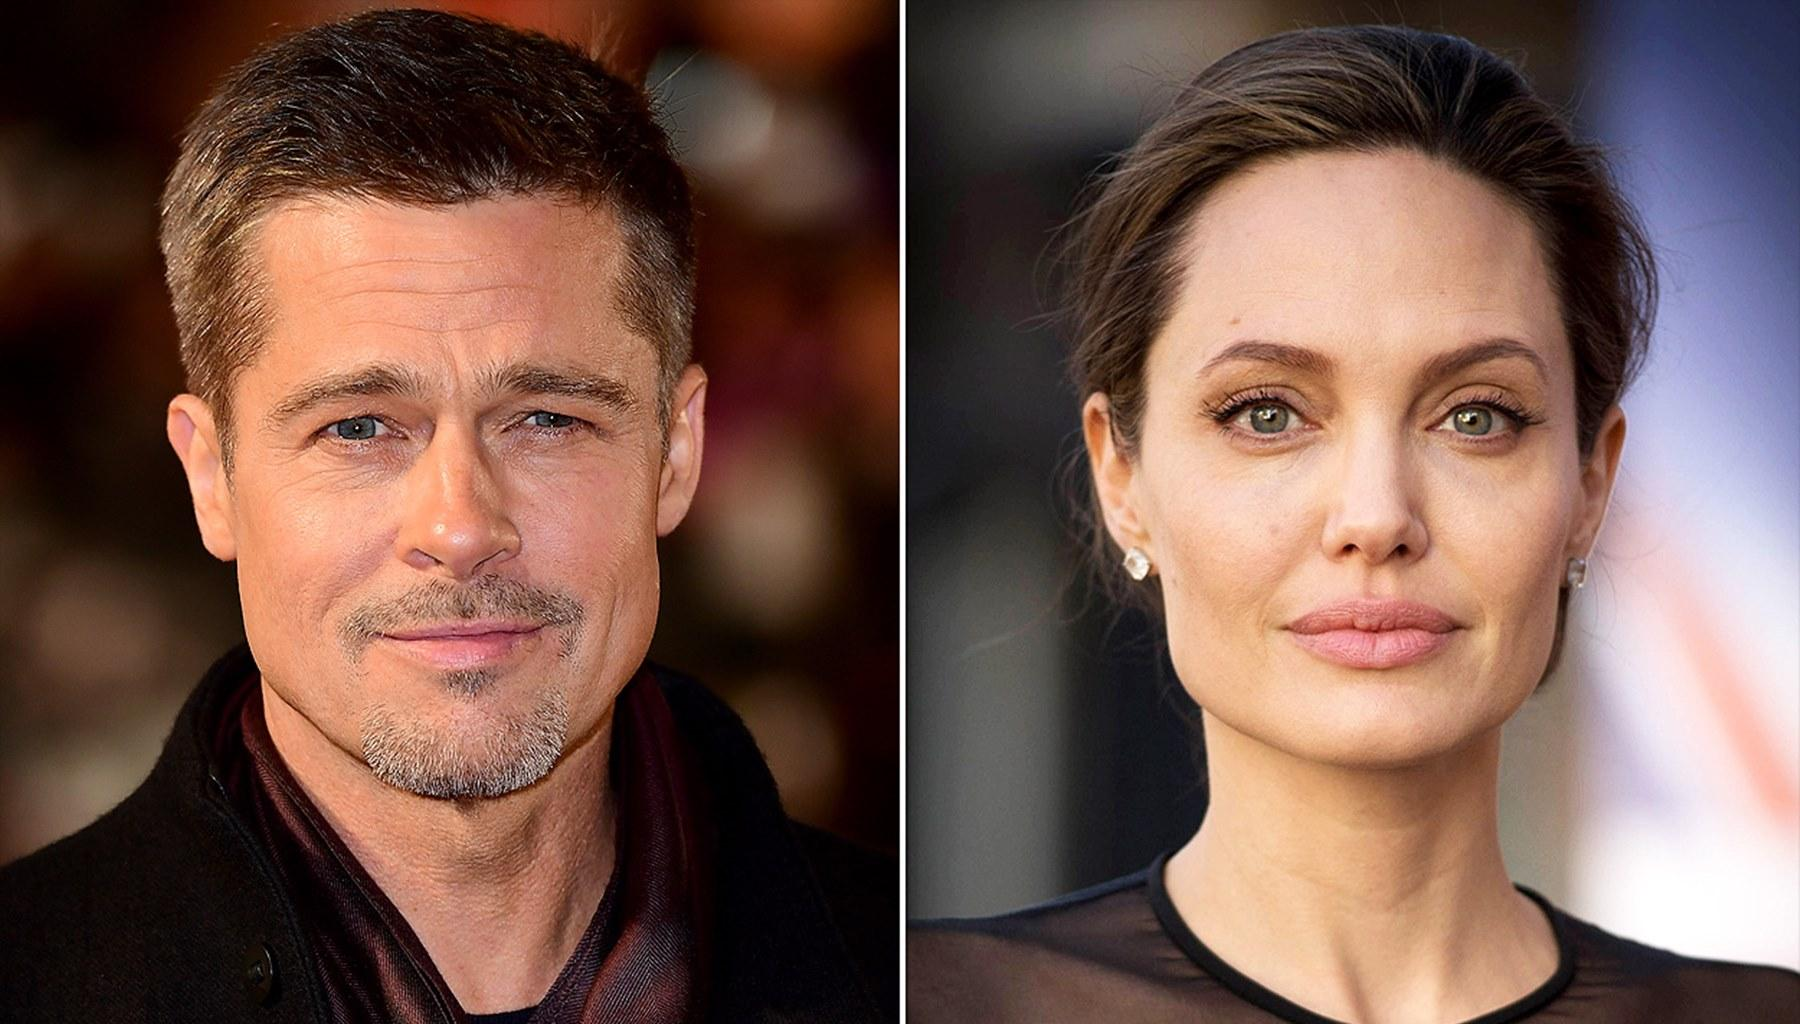 Brad Pitt Delights Angelina Jolie And All His Children By Doing This While In Quarantine Due To The Coronavirus Pandemic